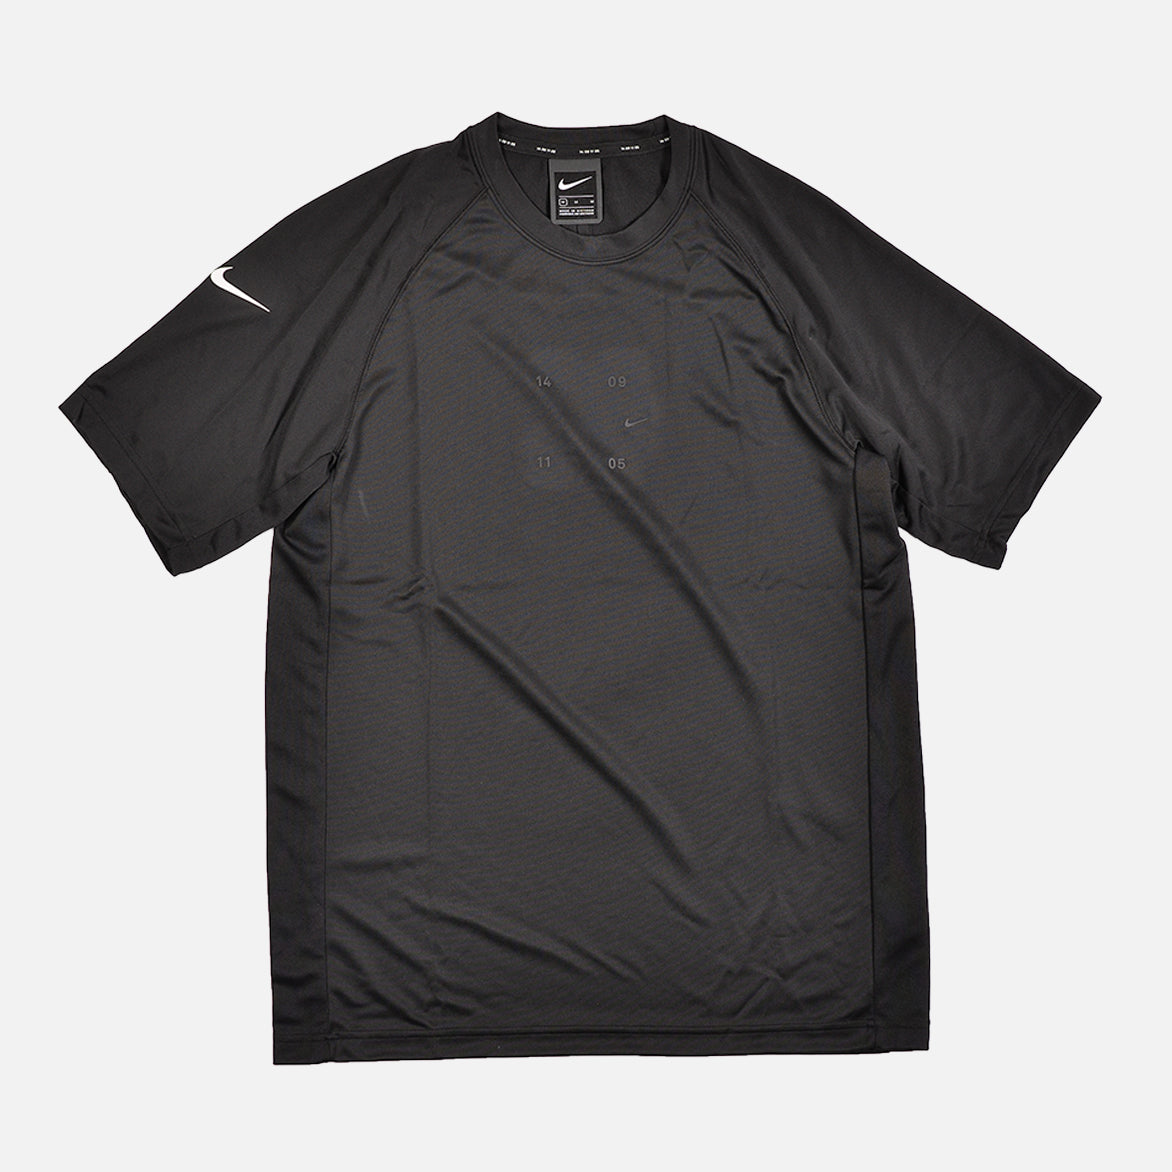 NSW TECH PACK KNIT TEE - BLACK / WHITE